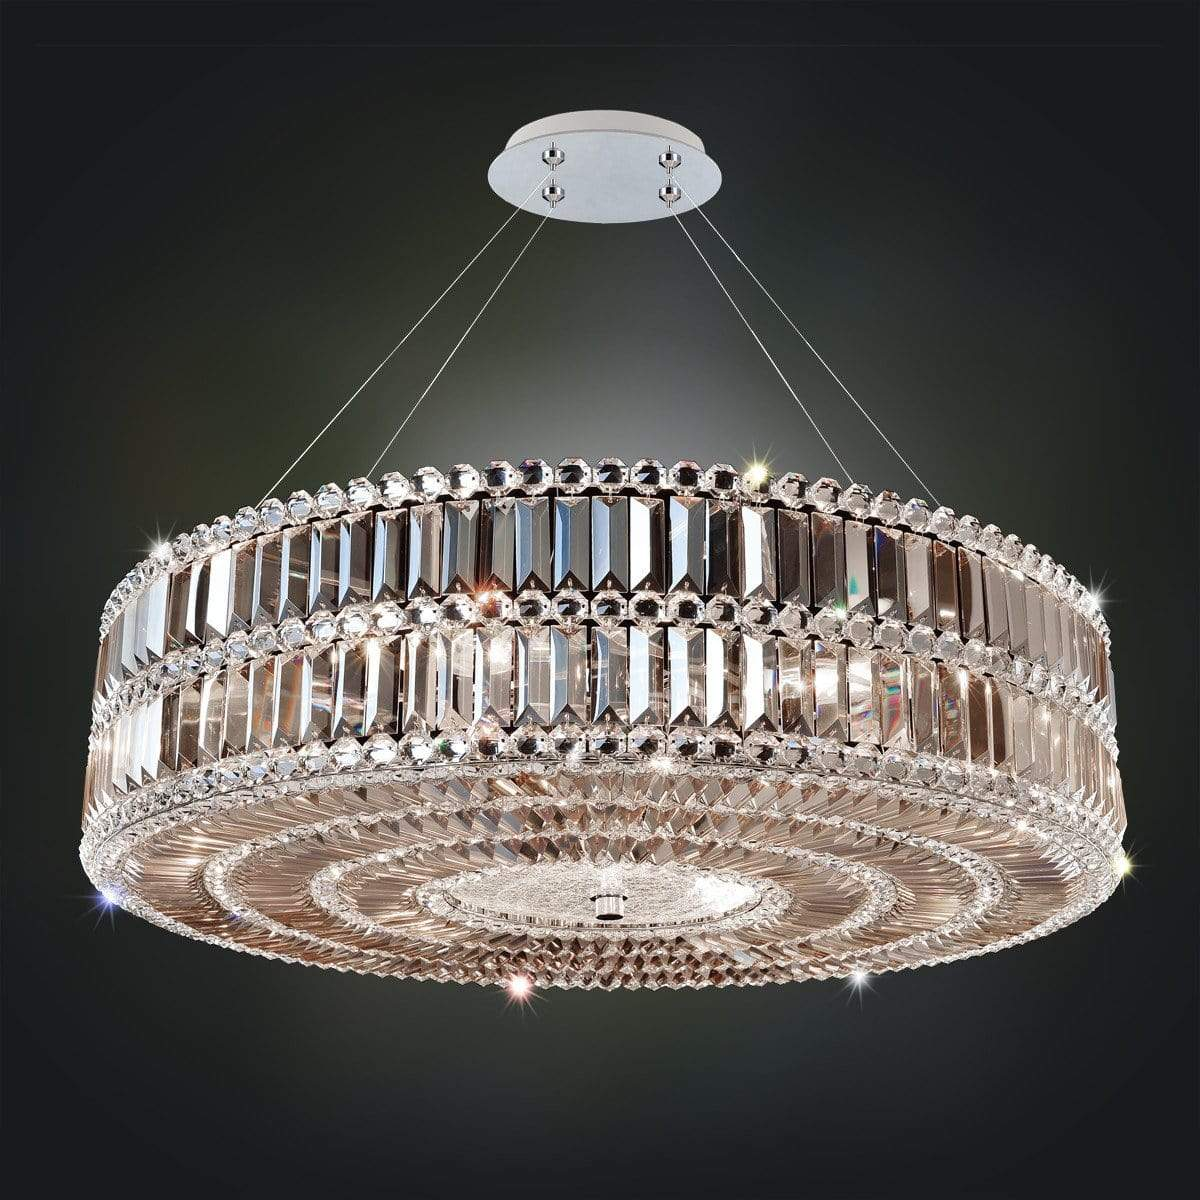 Allegri by Kalco Lighting Pendants Chrome / Firenze Fleet Gold Luxor 24 Inch Pendant From Allegri by Kalco Lighting 11741